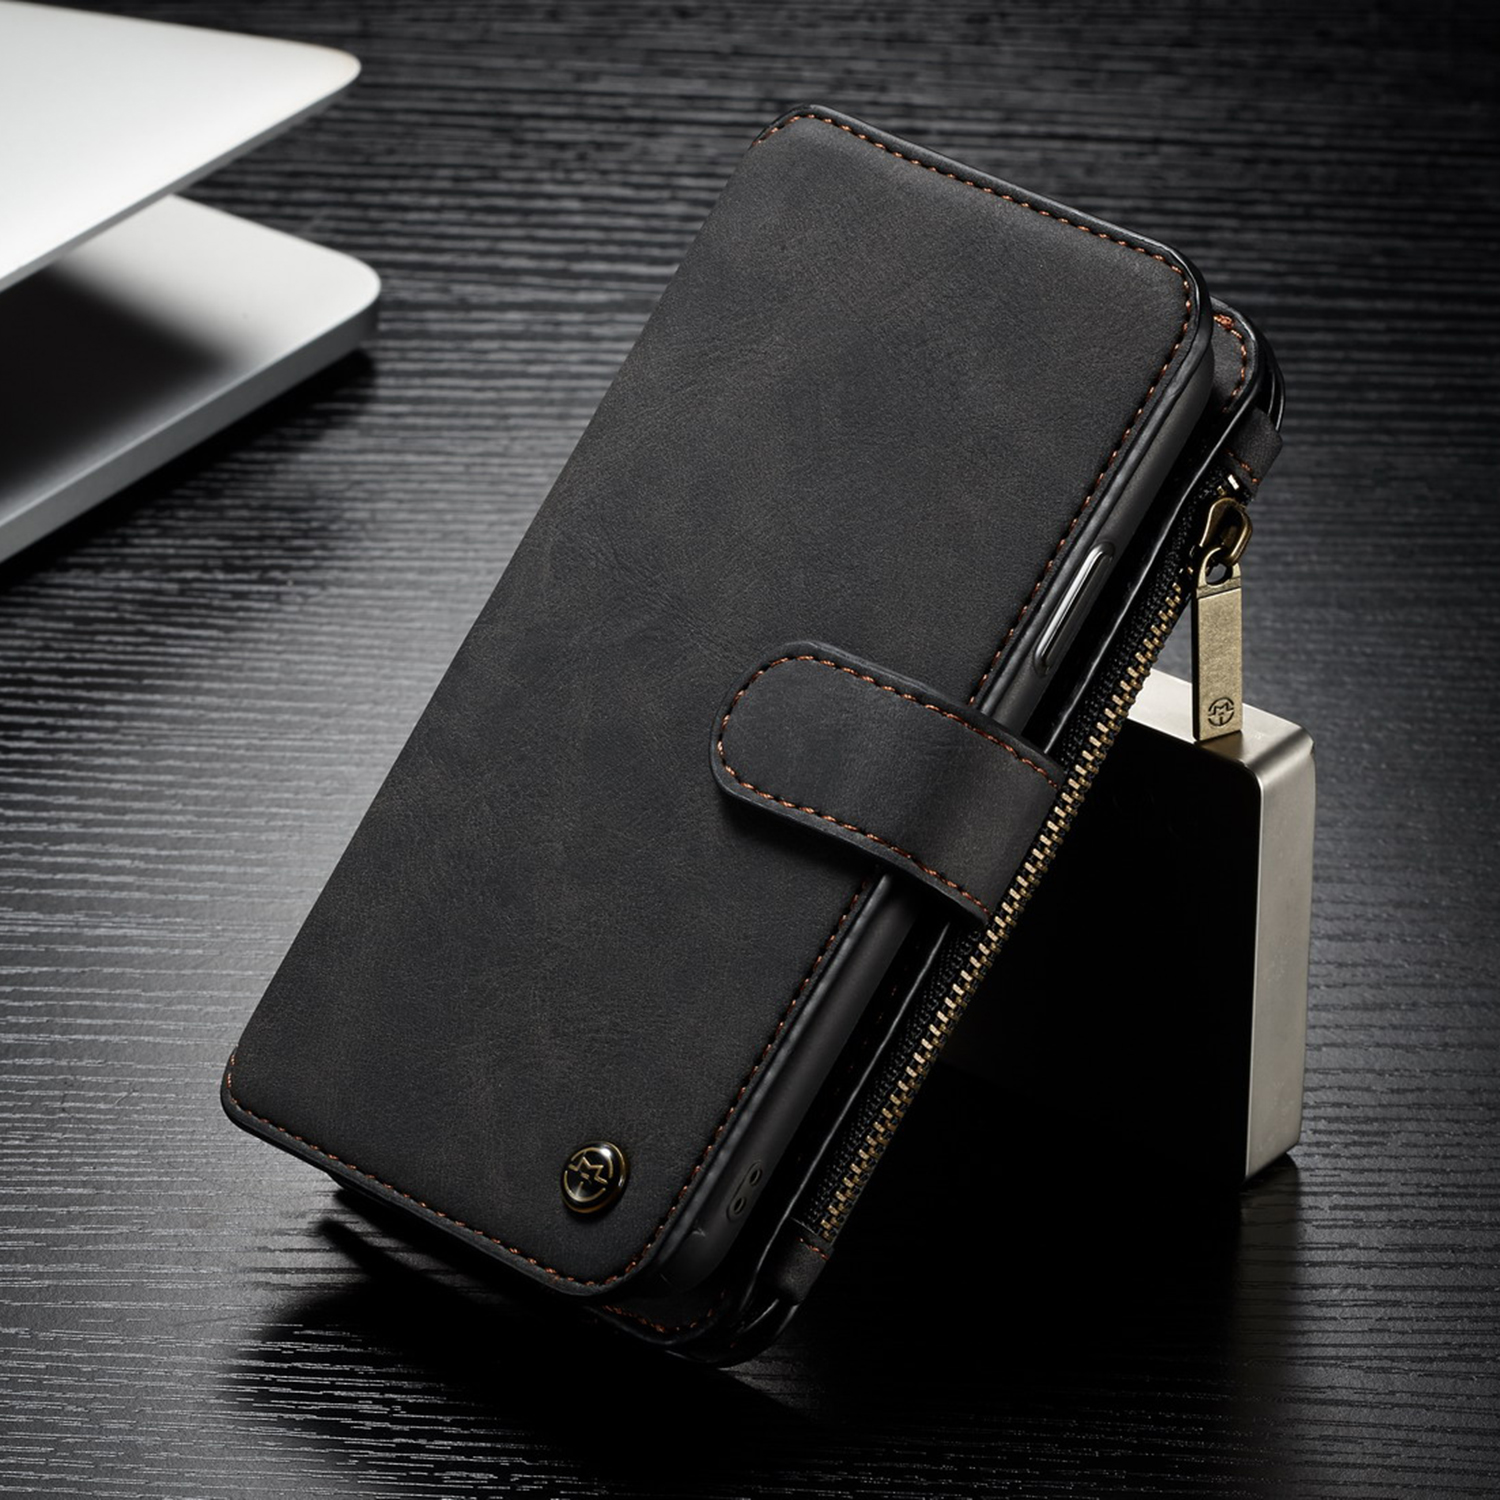 Luxury Magnet Leather Removable Wallet Zipper Case Cover